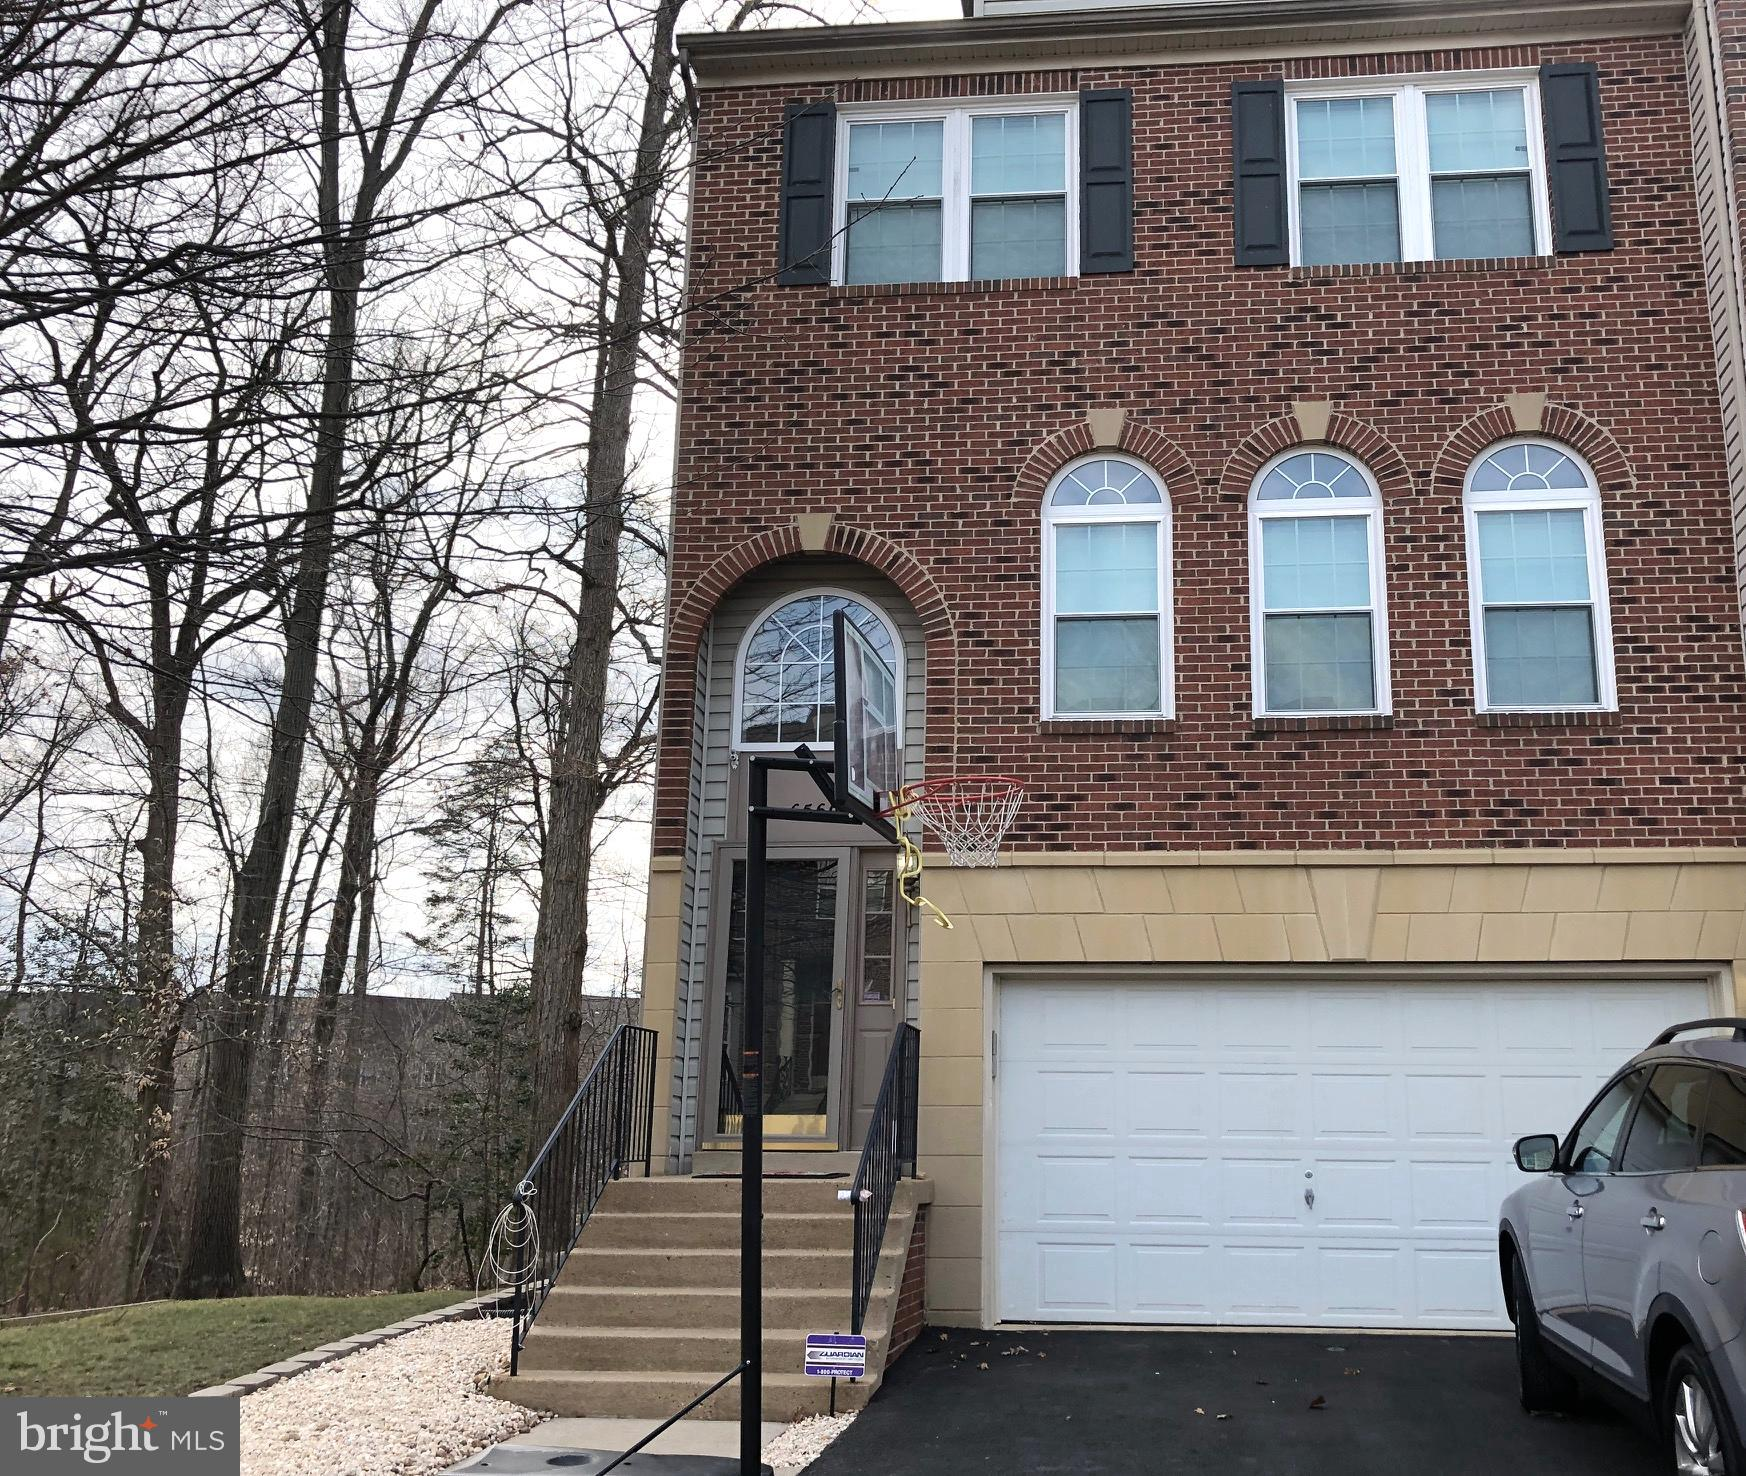 Home sold before photos could be taken. Open floor plan with kitchen bump out and sitting area. MBR has balcony overlooking woods. Legal           bedroom on lower level.